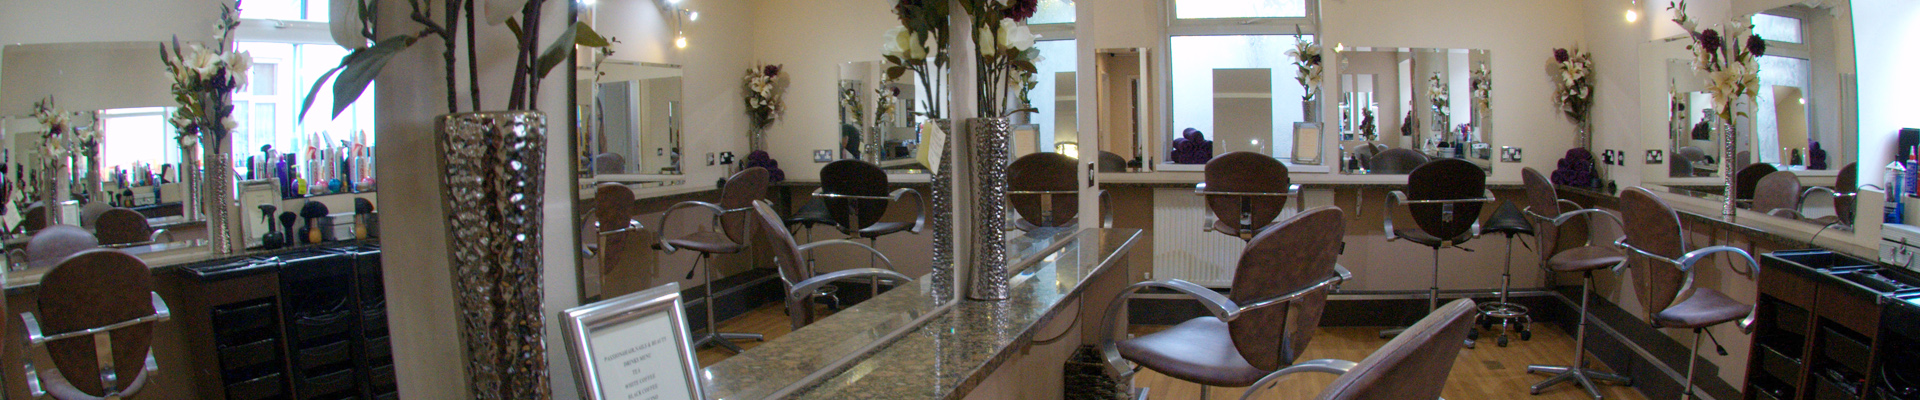 Passion Hair and Beauty Salon Plymouth - Slide One